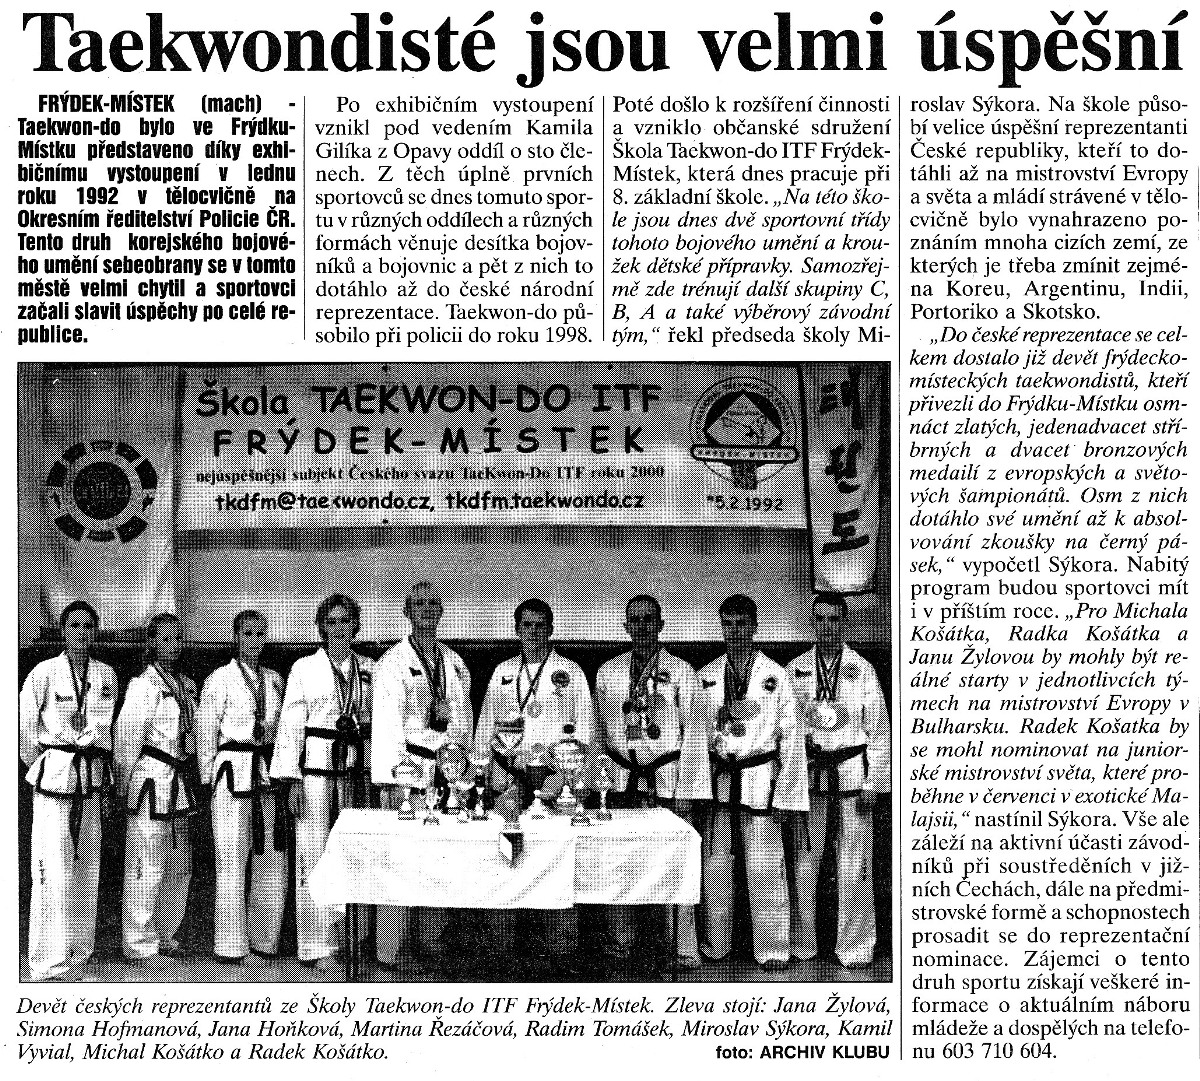 Taekwon-do ITF members are very successful (Czech Republic, 2001)